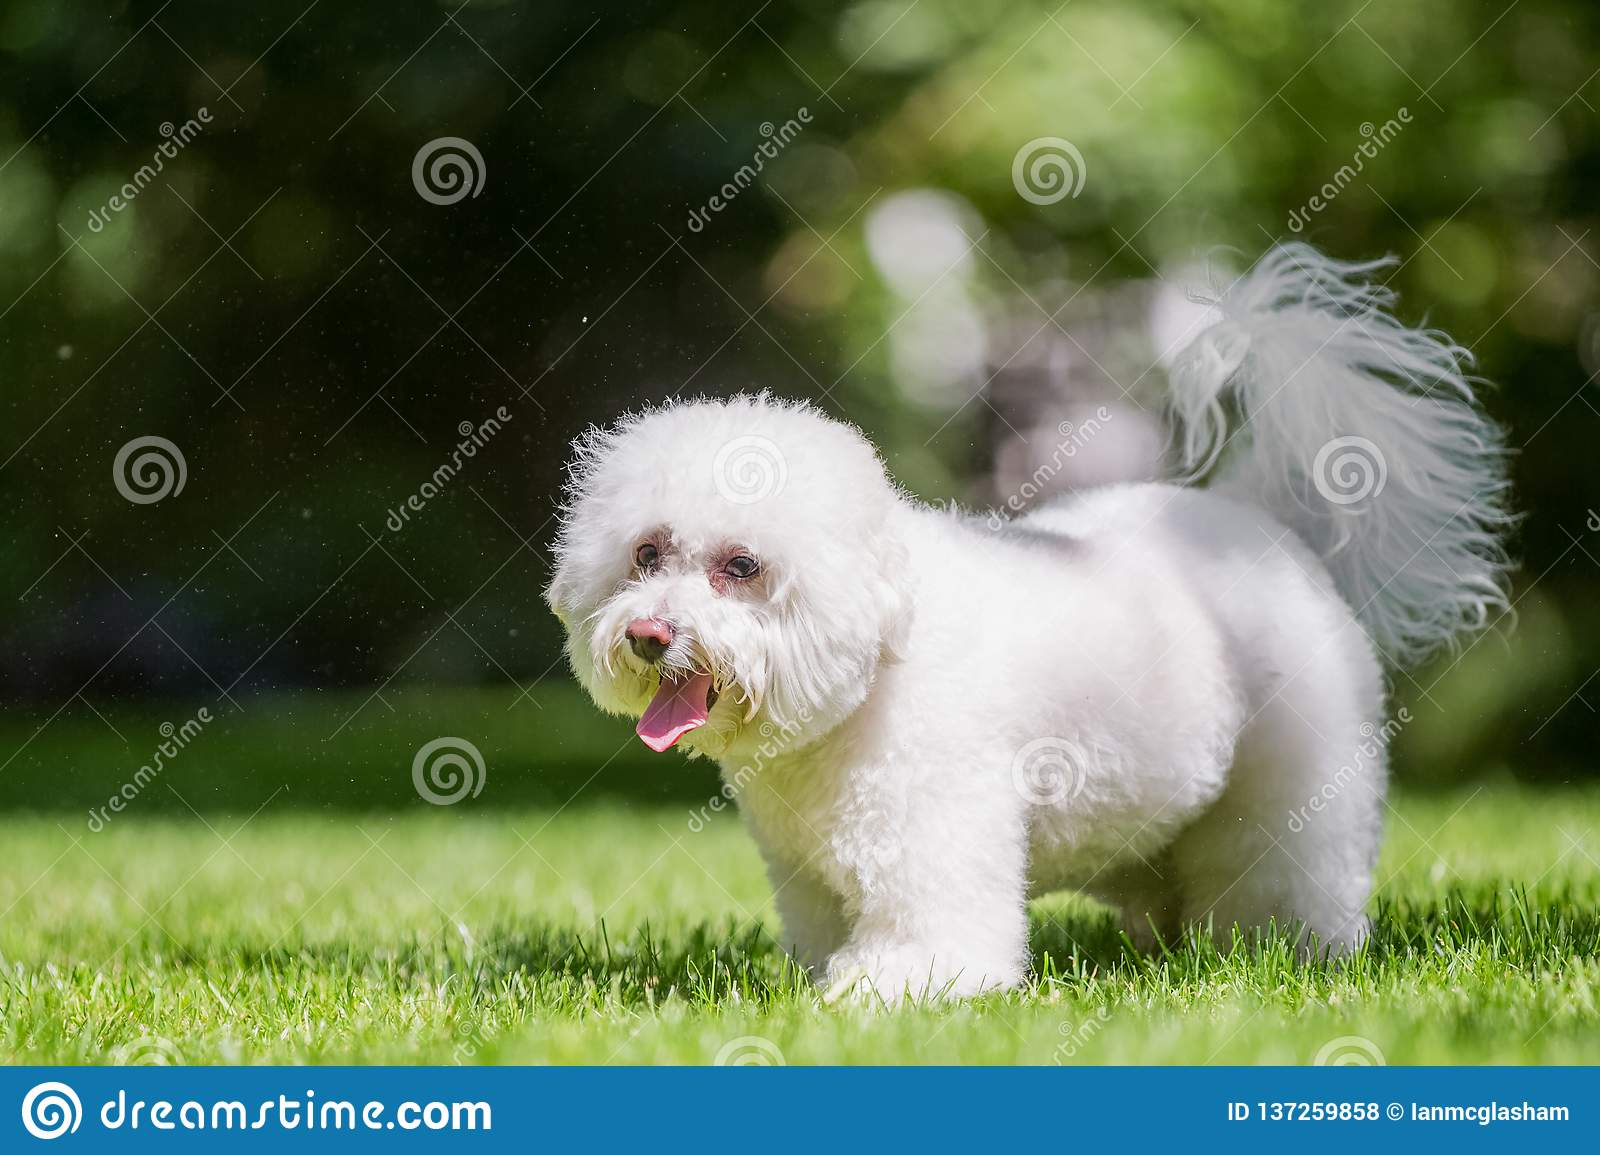 Bichon Frise Poodle Standing In A Field Looking To The Side